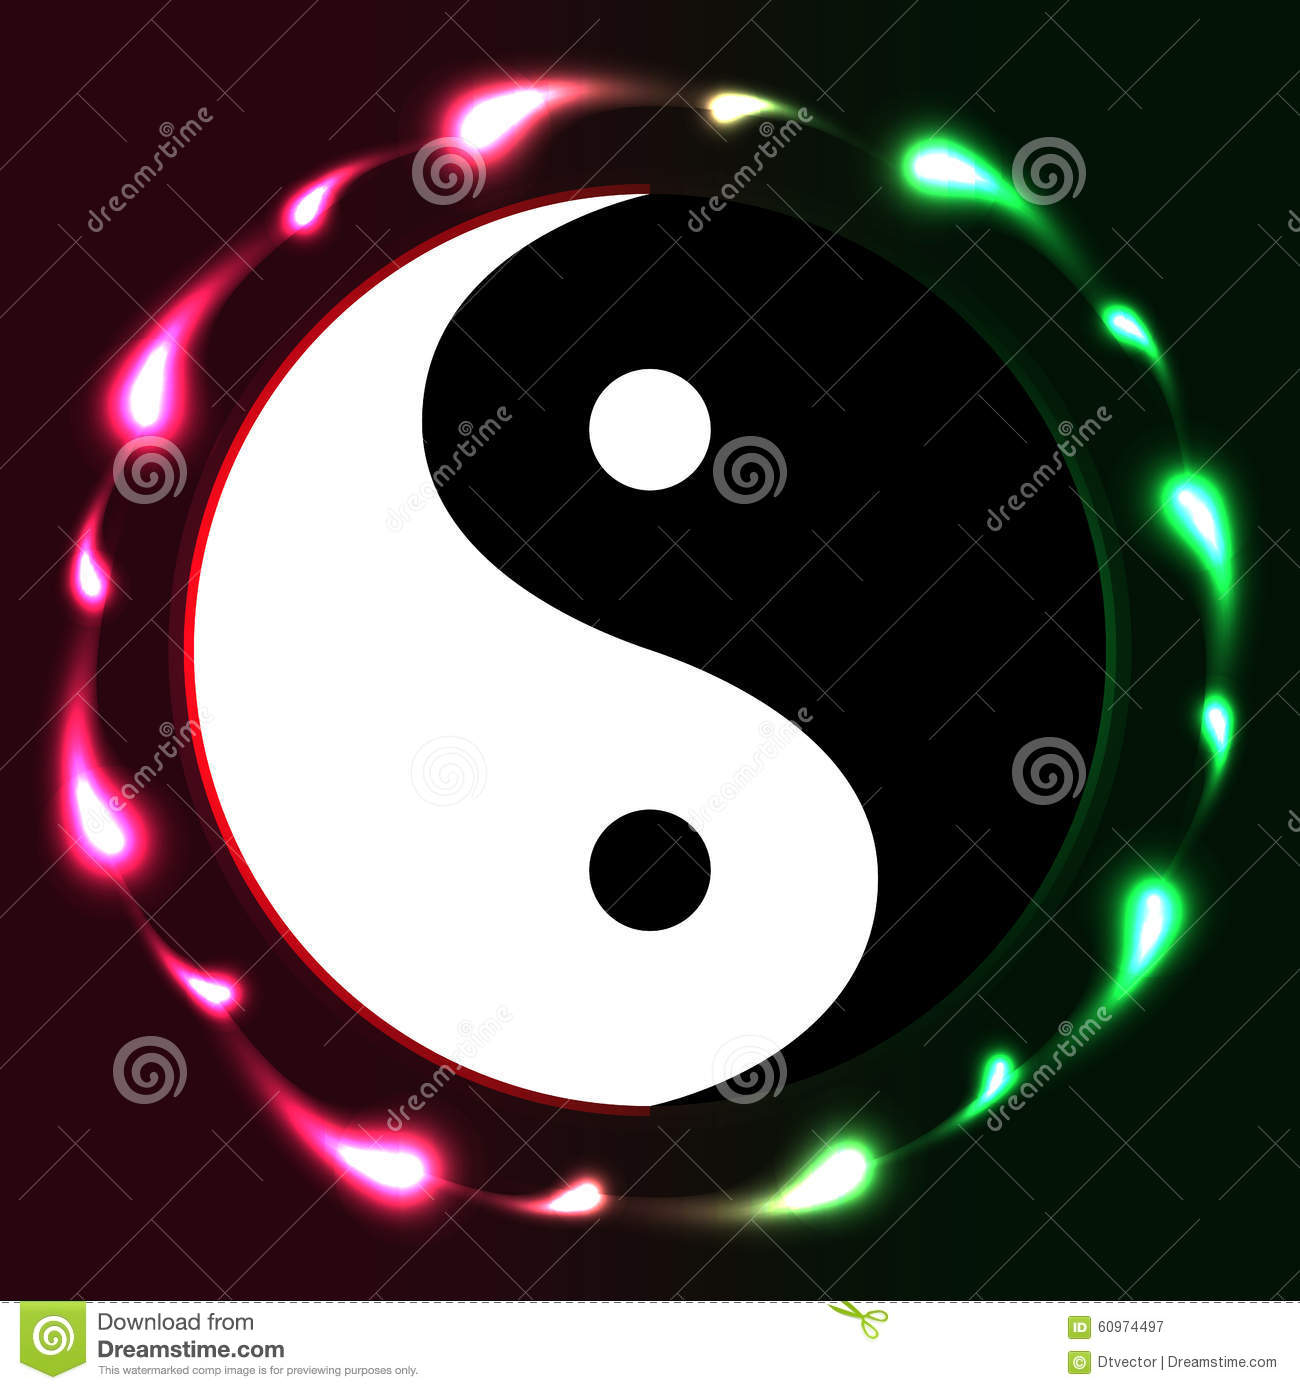 Yin yang circle bright stock vector image 60974497 for Architecture yin yang